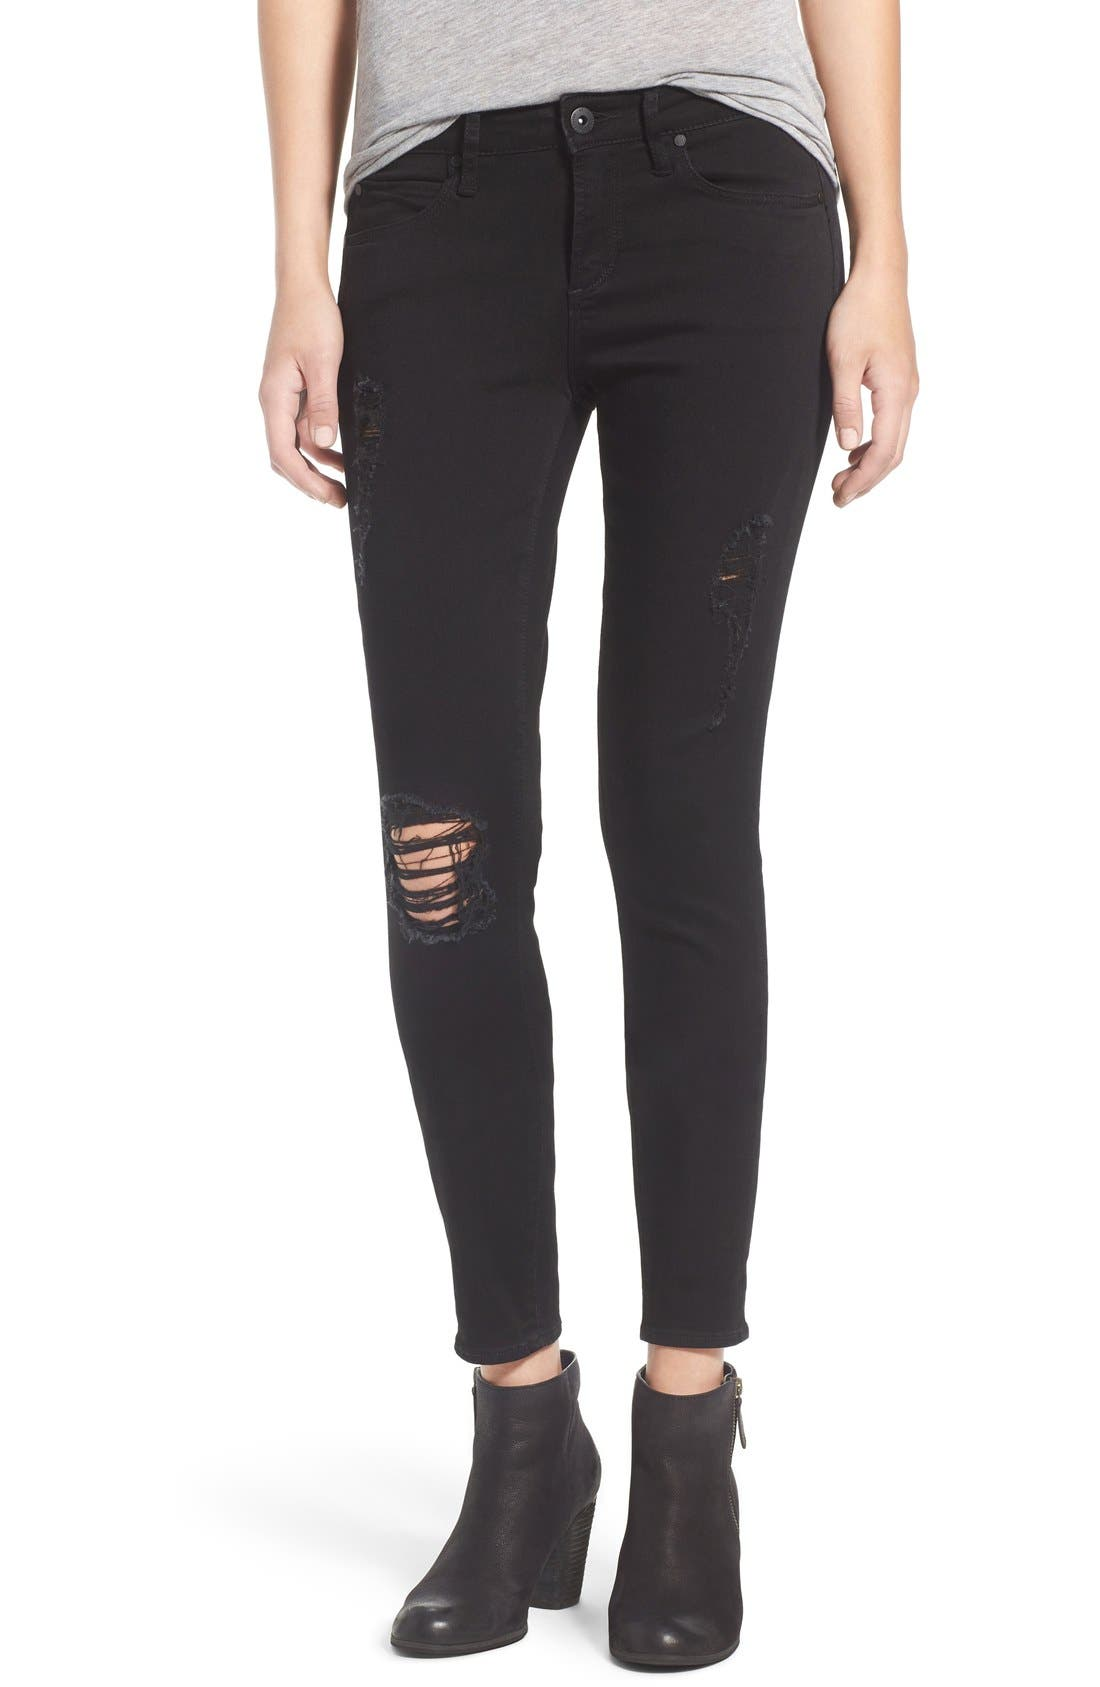 Alternate Image 1 Selected - Articles of Society 'Sarah' Skinny Jeans (Black Cast)